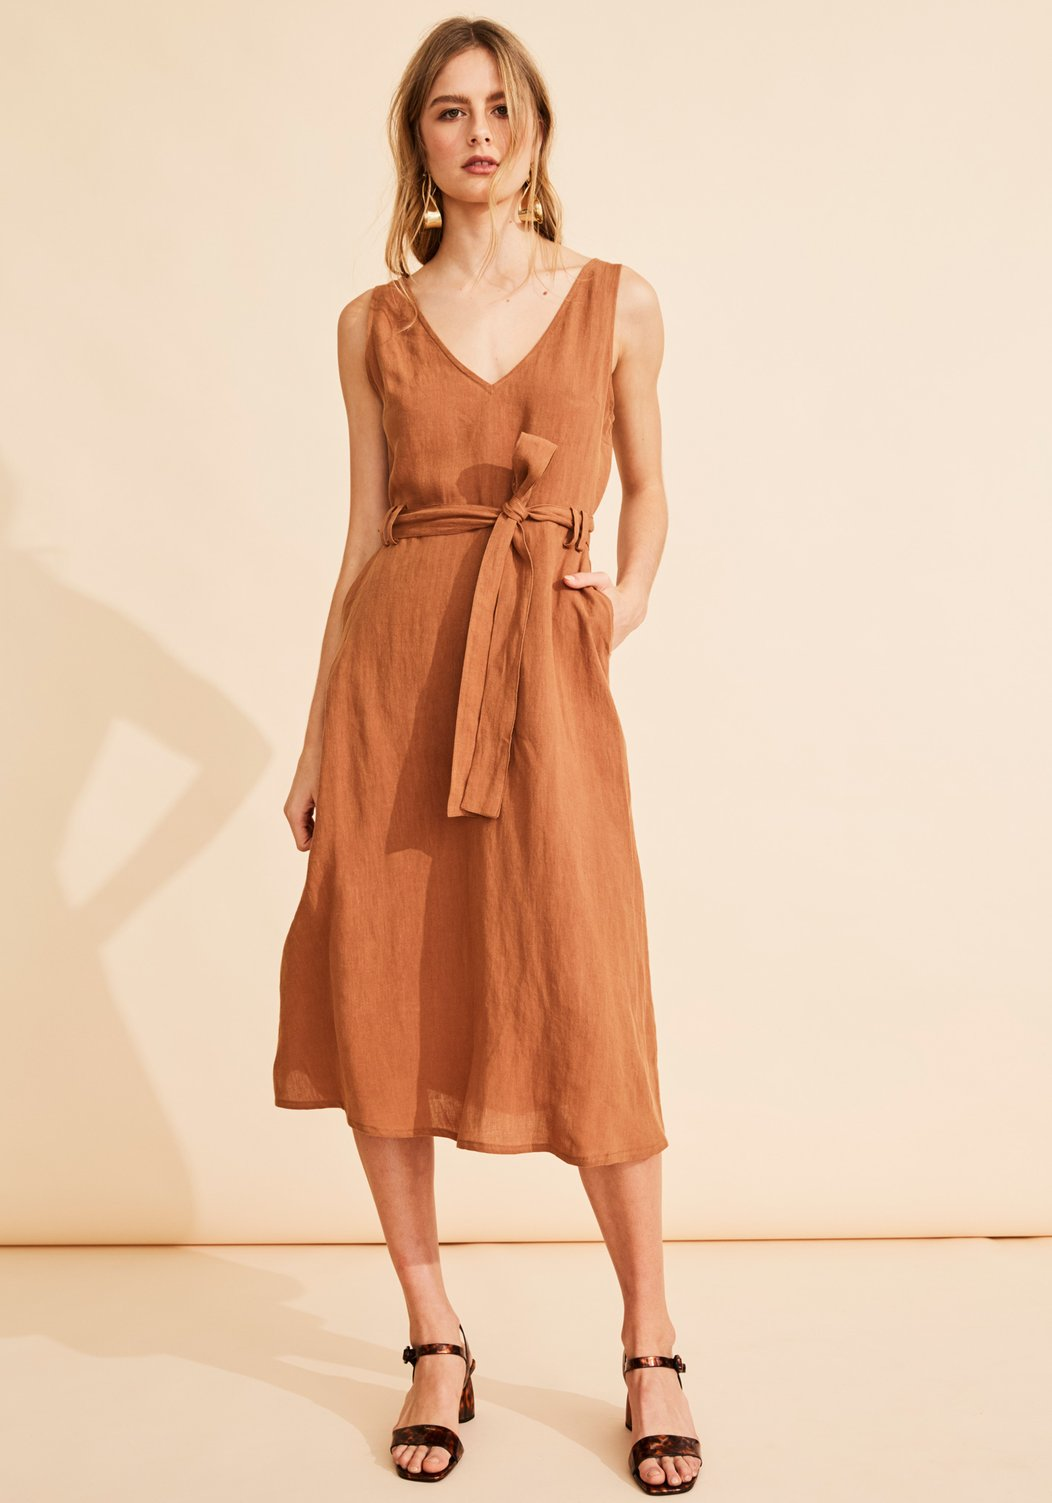 NEVADA LINEN DRESS - terracotta